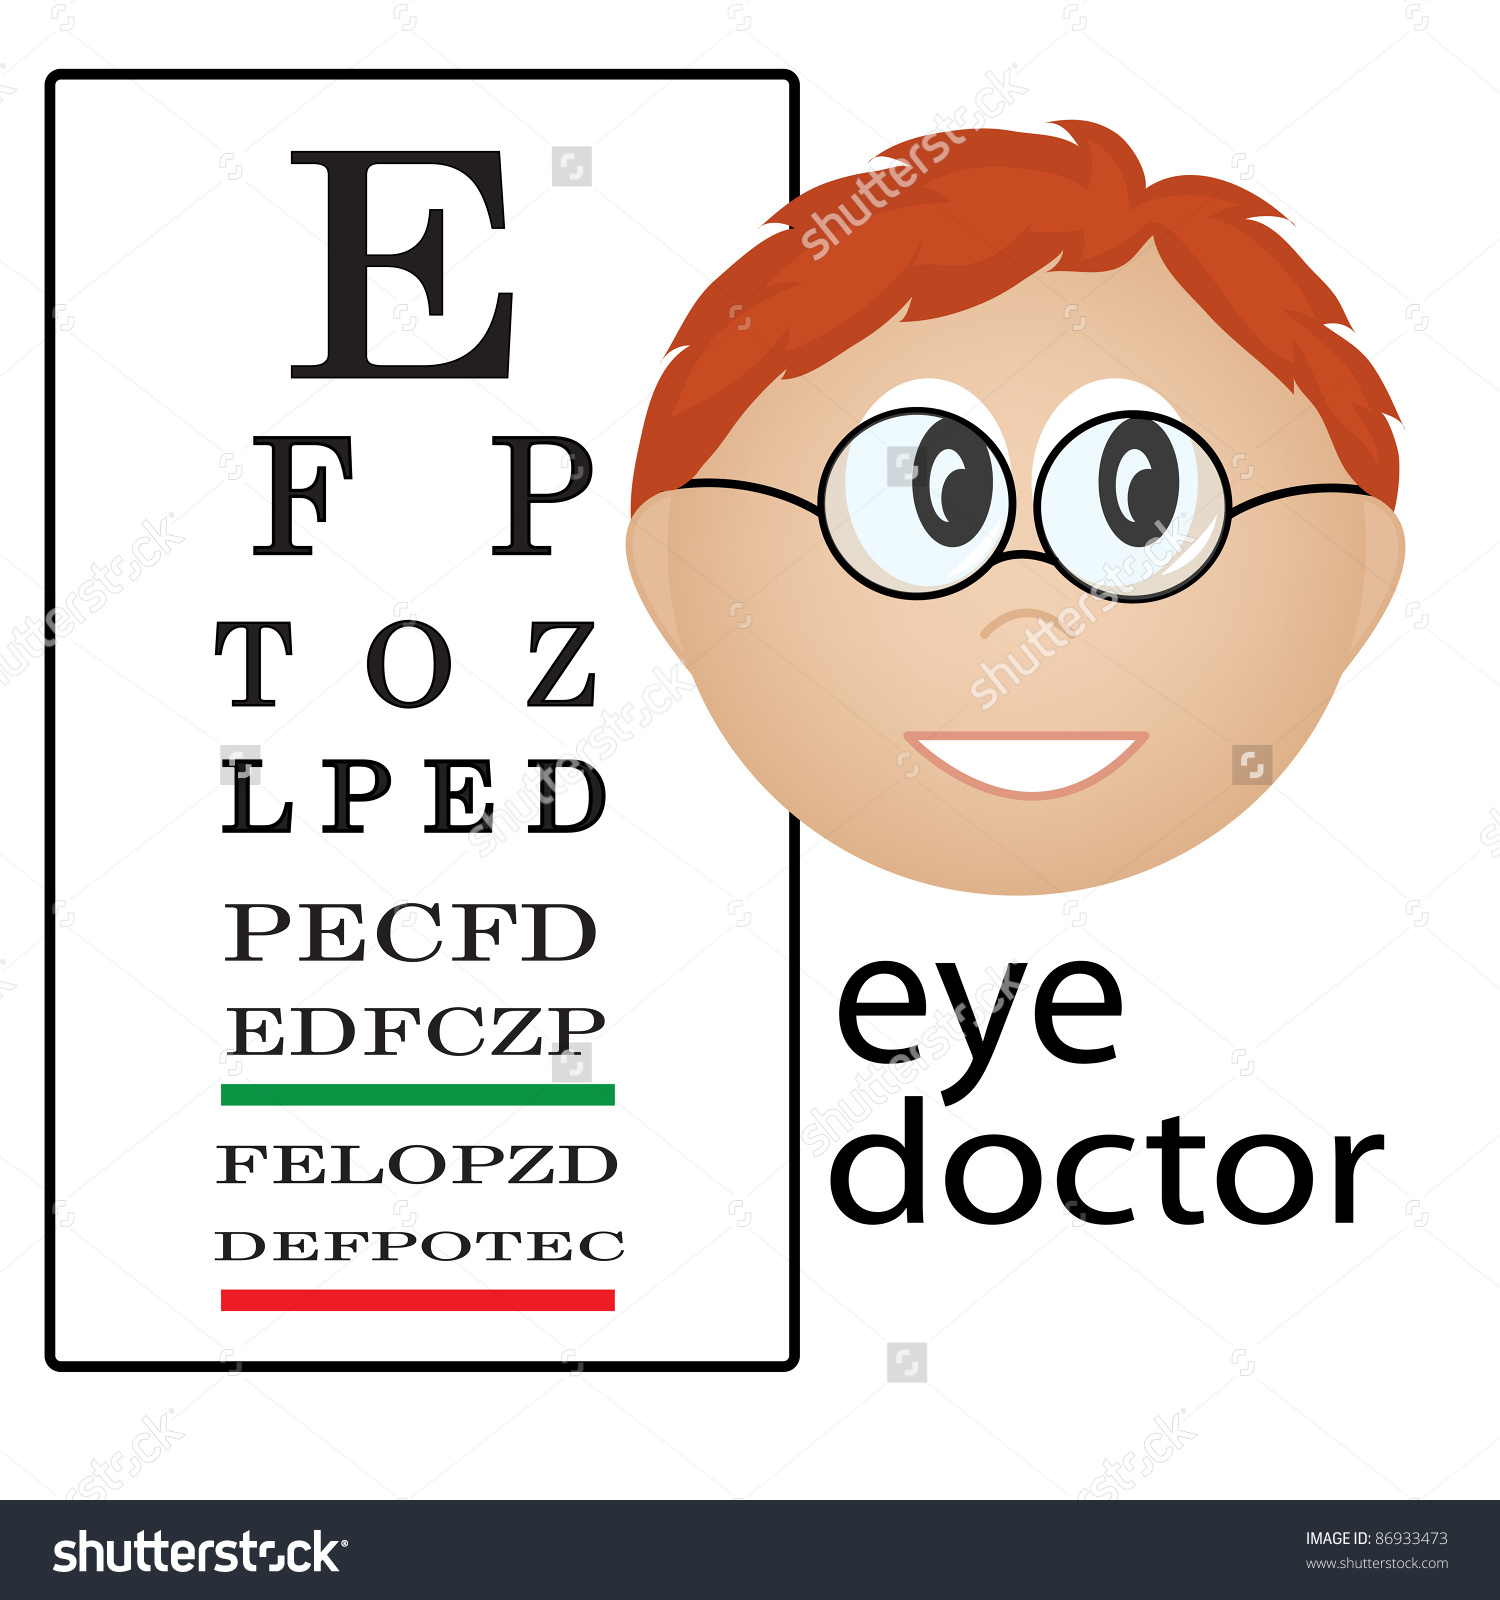 Clip art illustration of an eye doctor occupation icon.